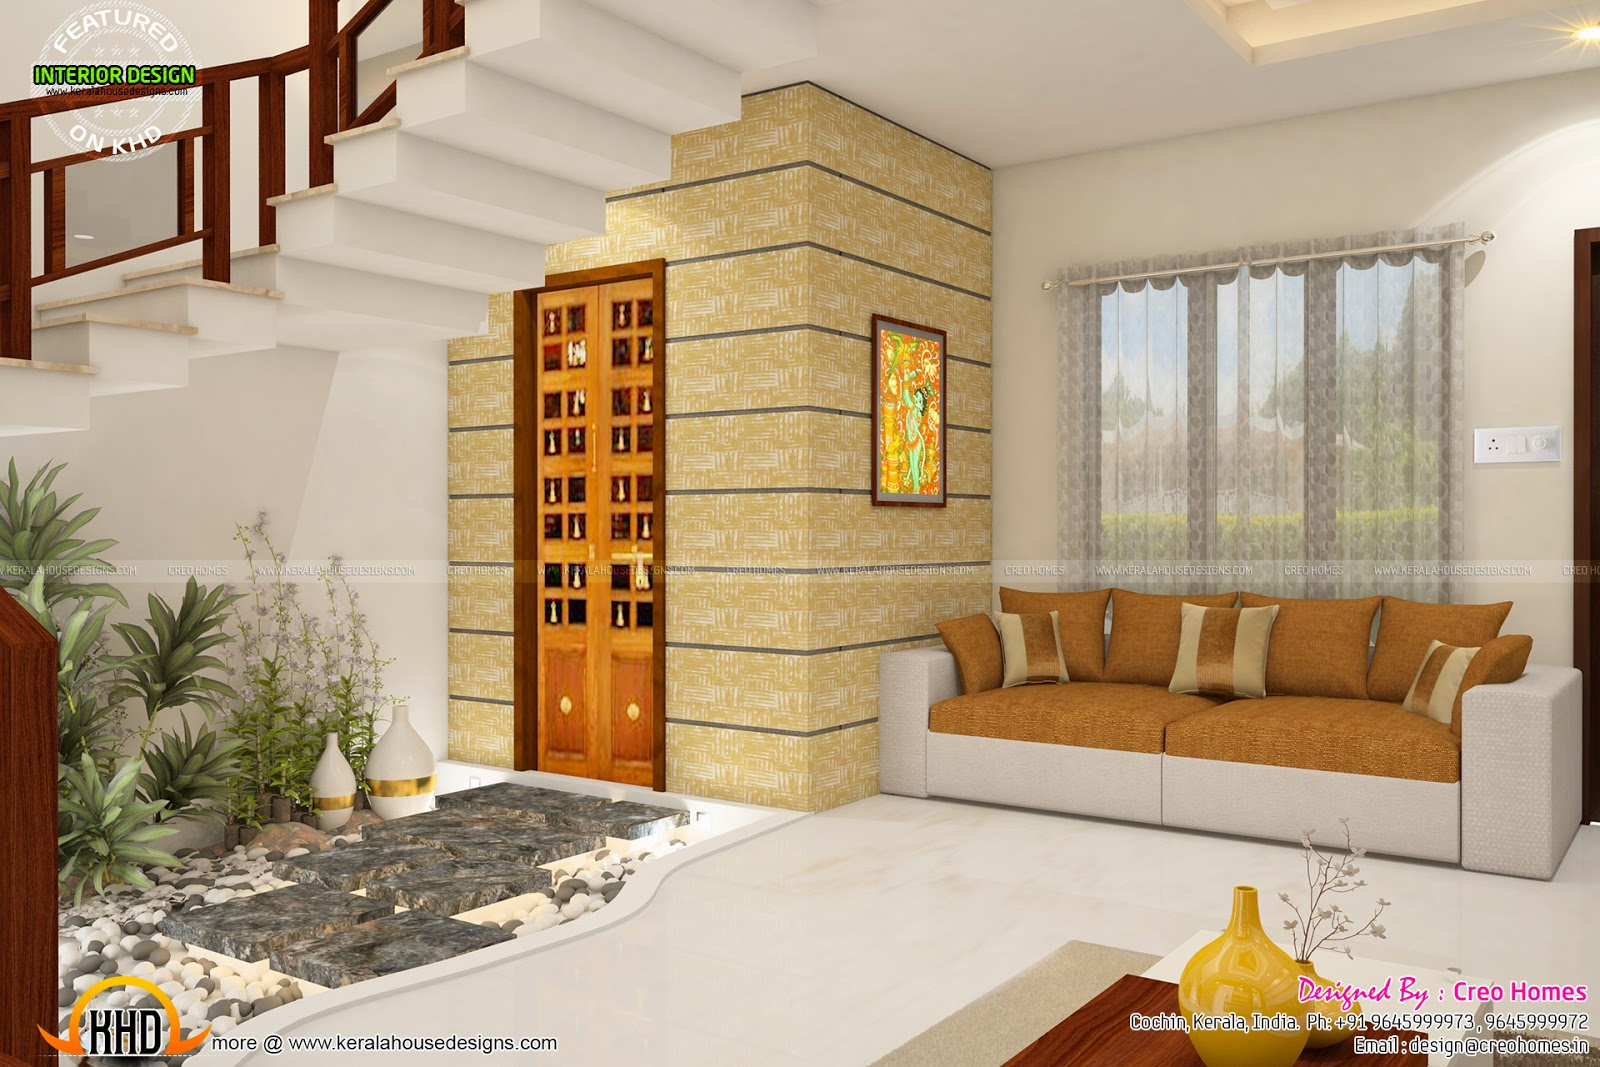 Total home interior solutions by creo homes kerala home for Interior design ideas for small homes in kerala